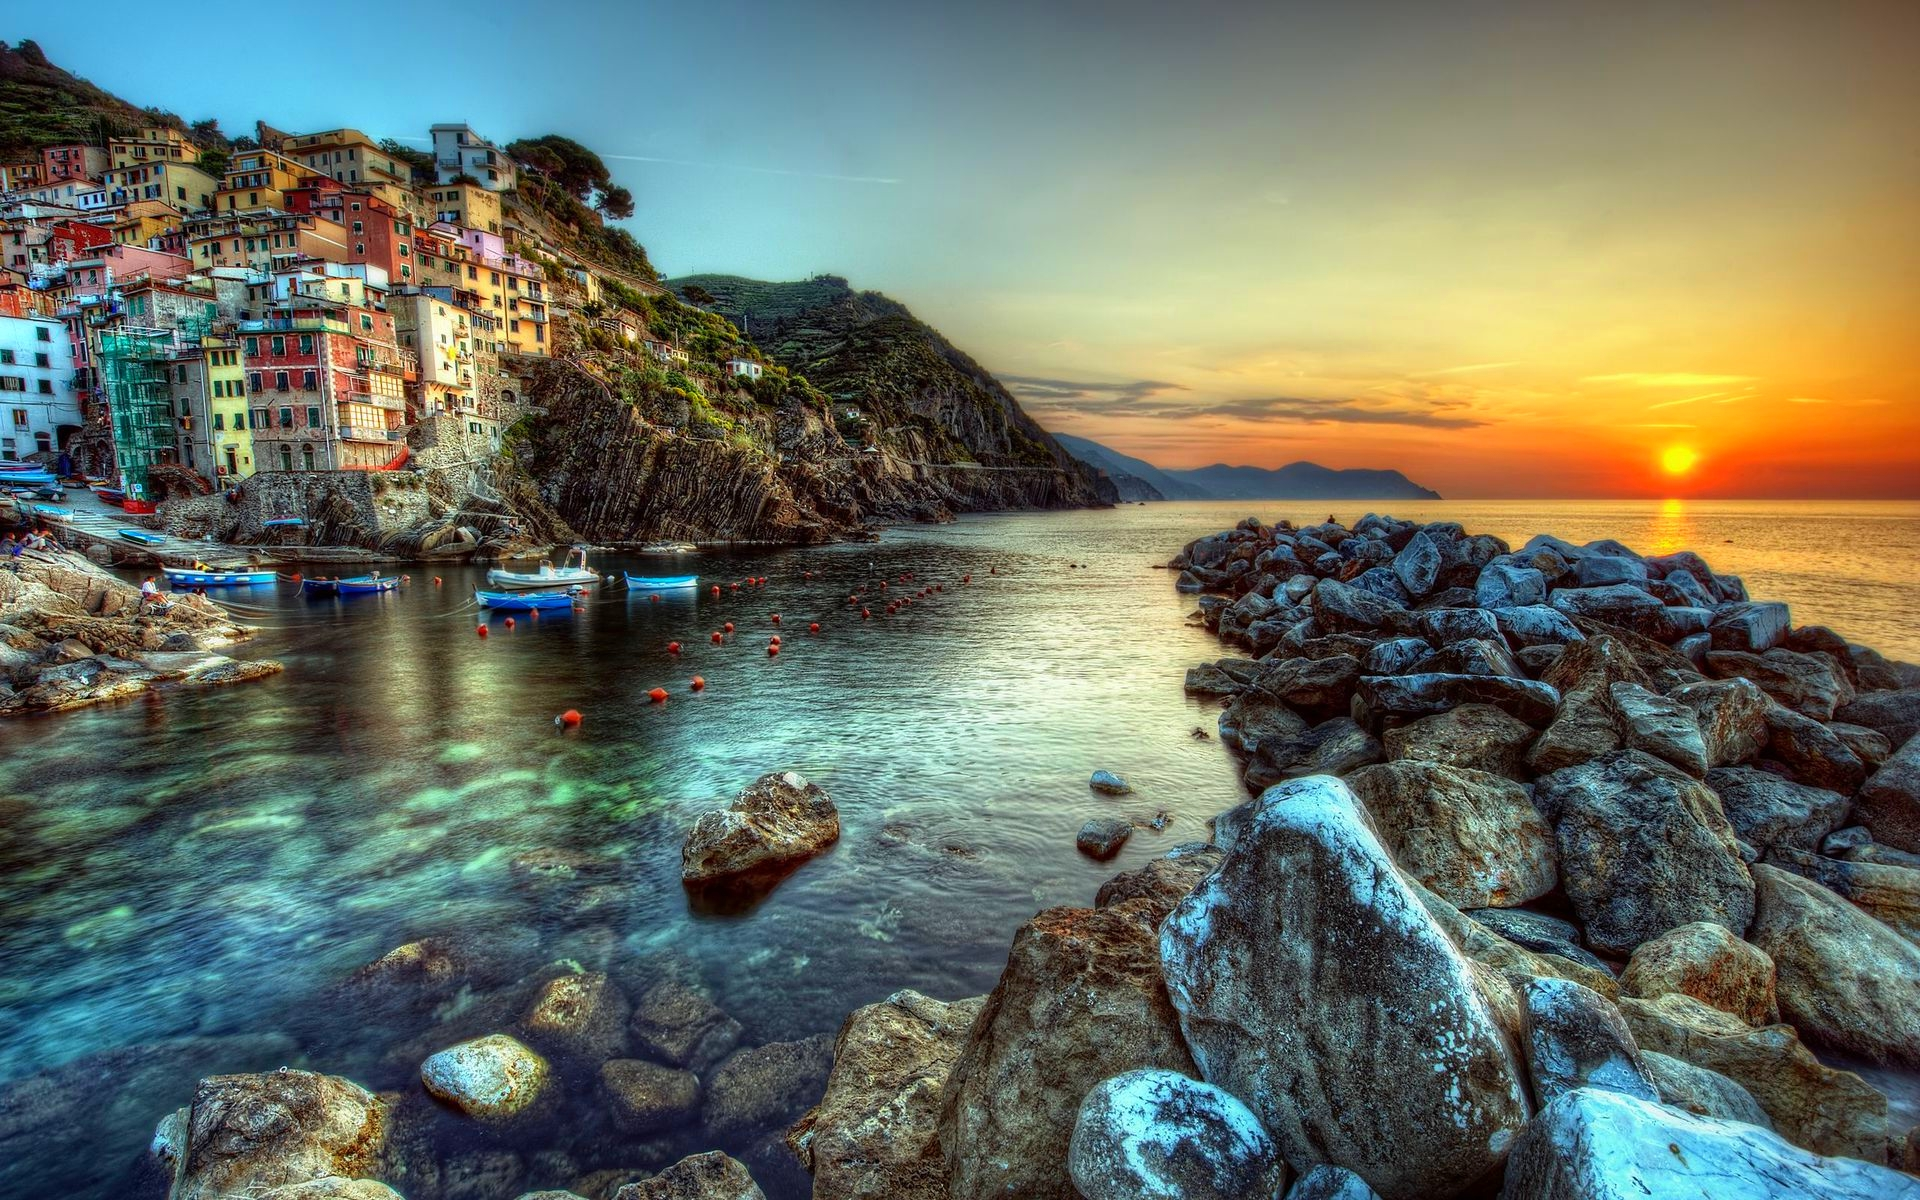 La spezia italy desktop wallpaper 1920x1200 for Italy wallpaper